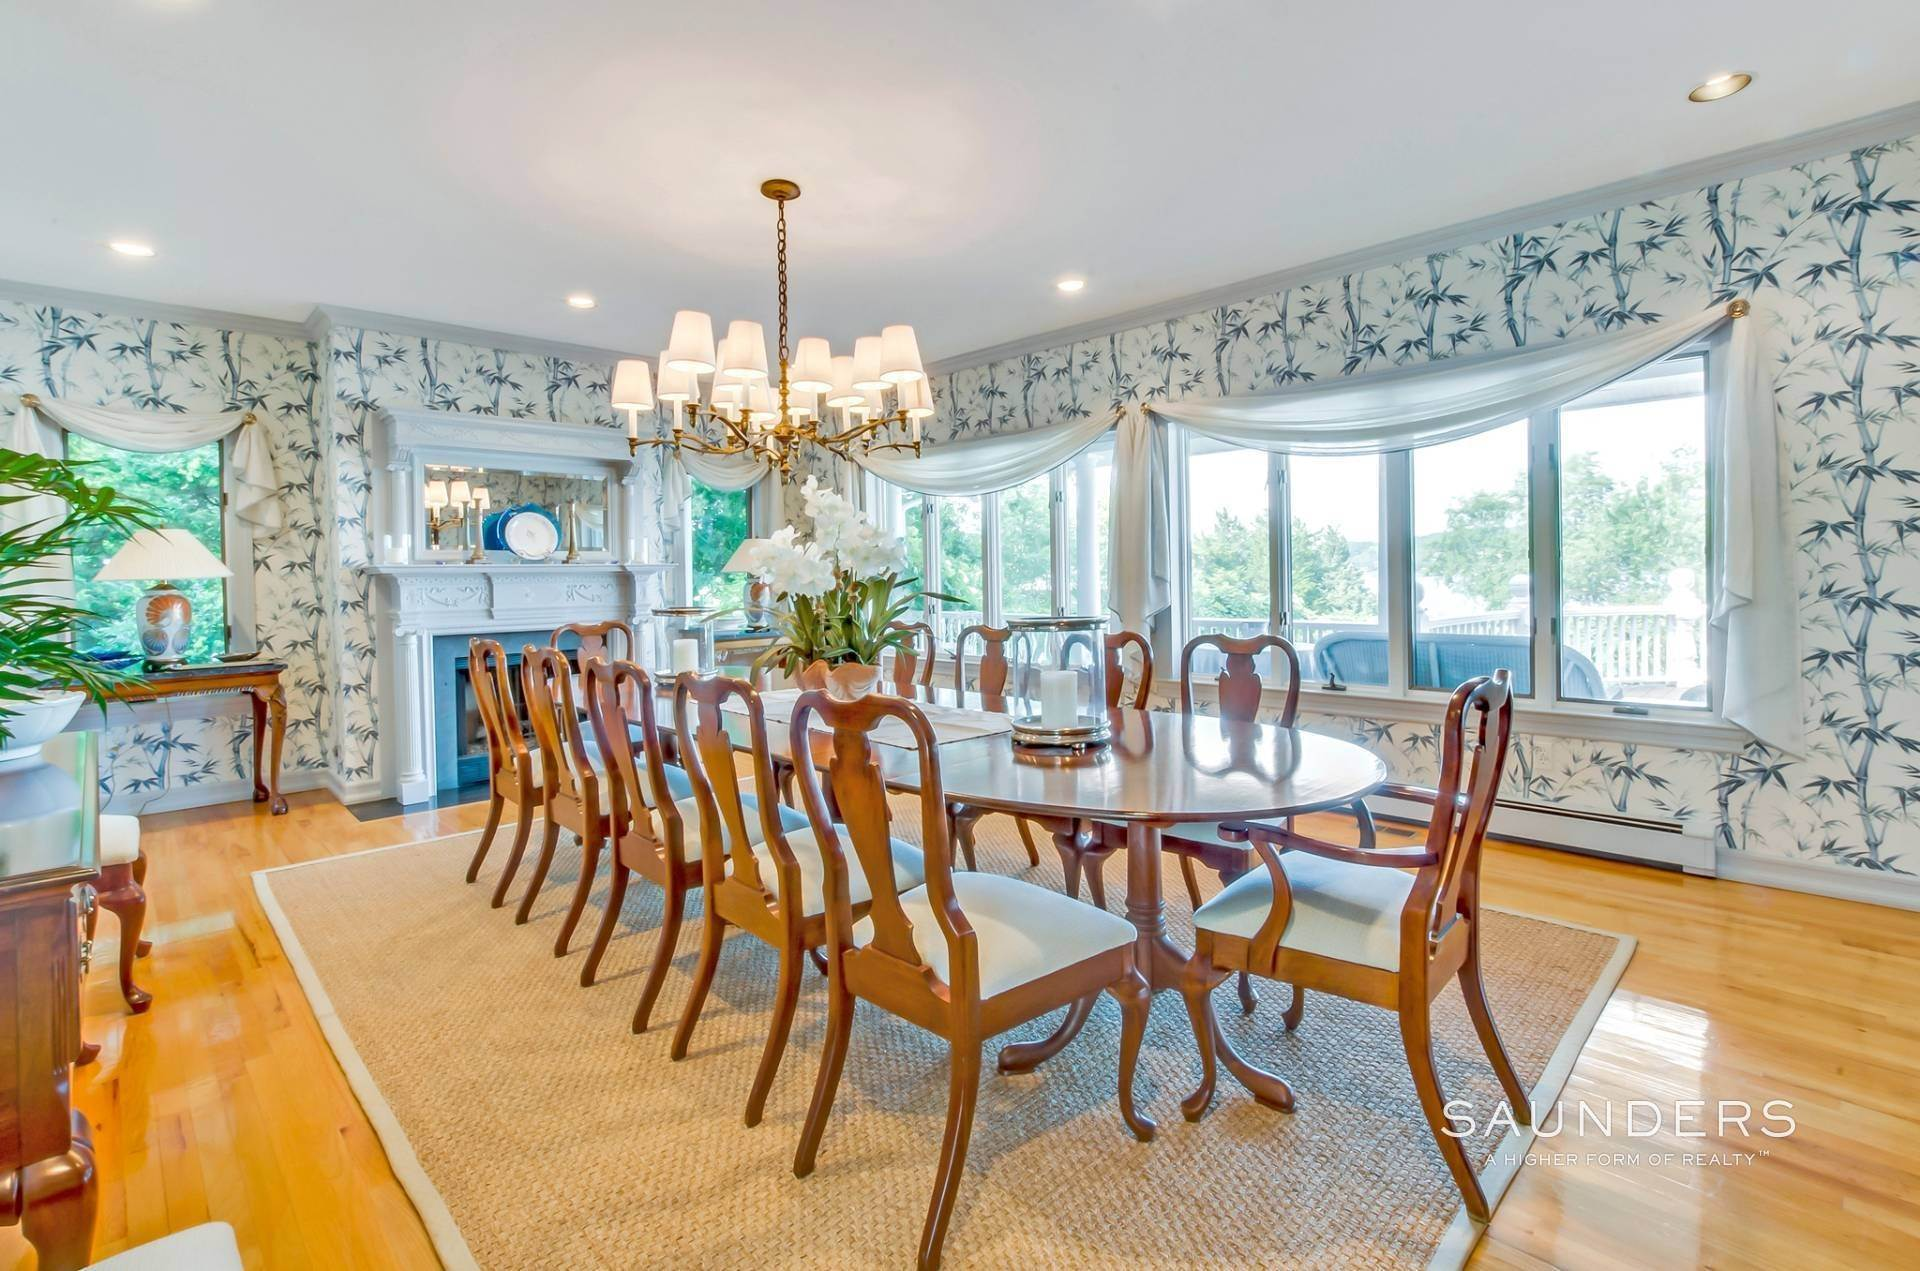 8. Single Family Homes for Sale at Estate Section Compound With Deep Water Dock, Sandy Beach, Pool 58 Westmoreland Drive, Shelter Island Heights, Shelter Island, NY 11964